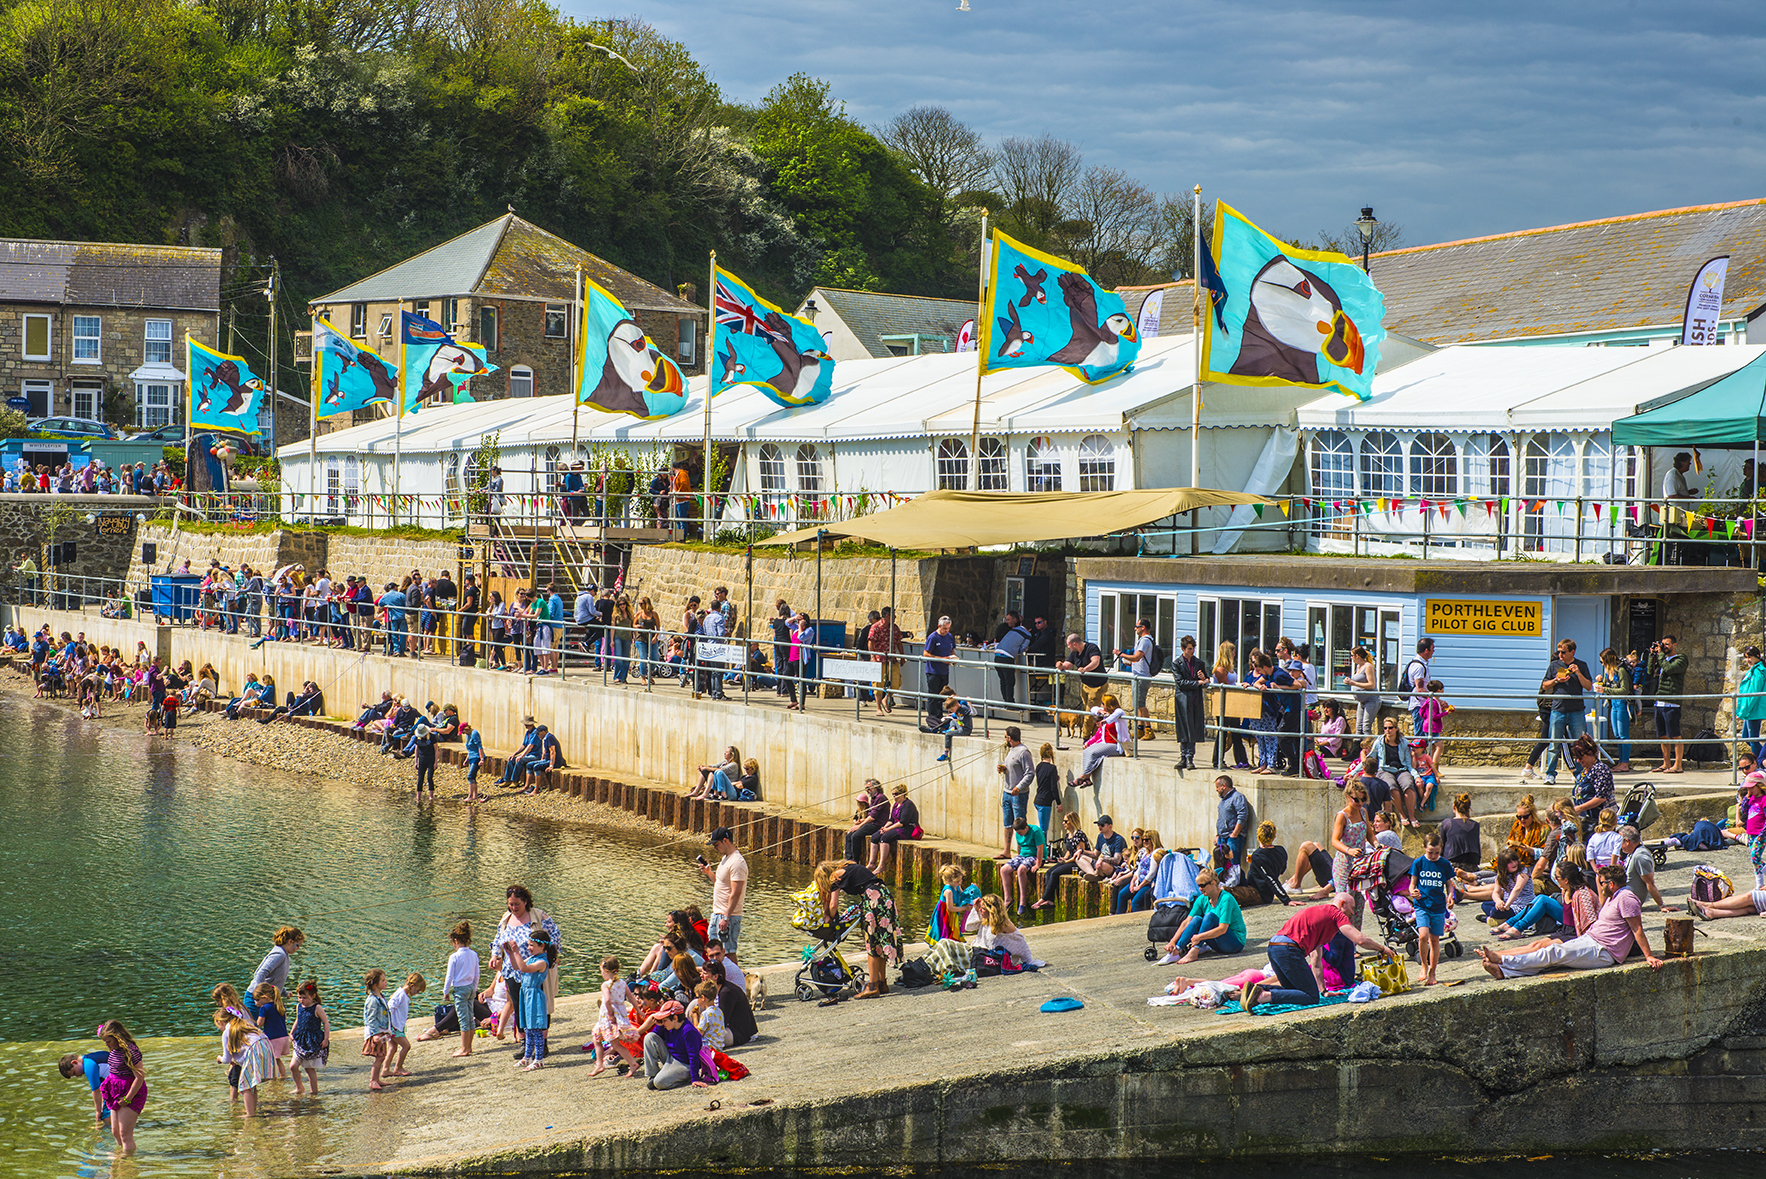 Porthleven Food Festival always attracts thousands of visitors. Photo: Arc Live